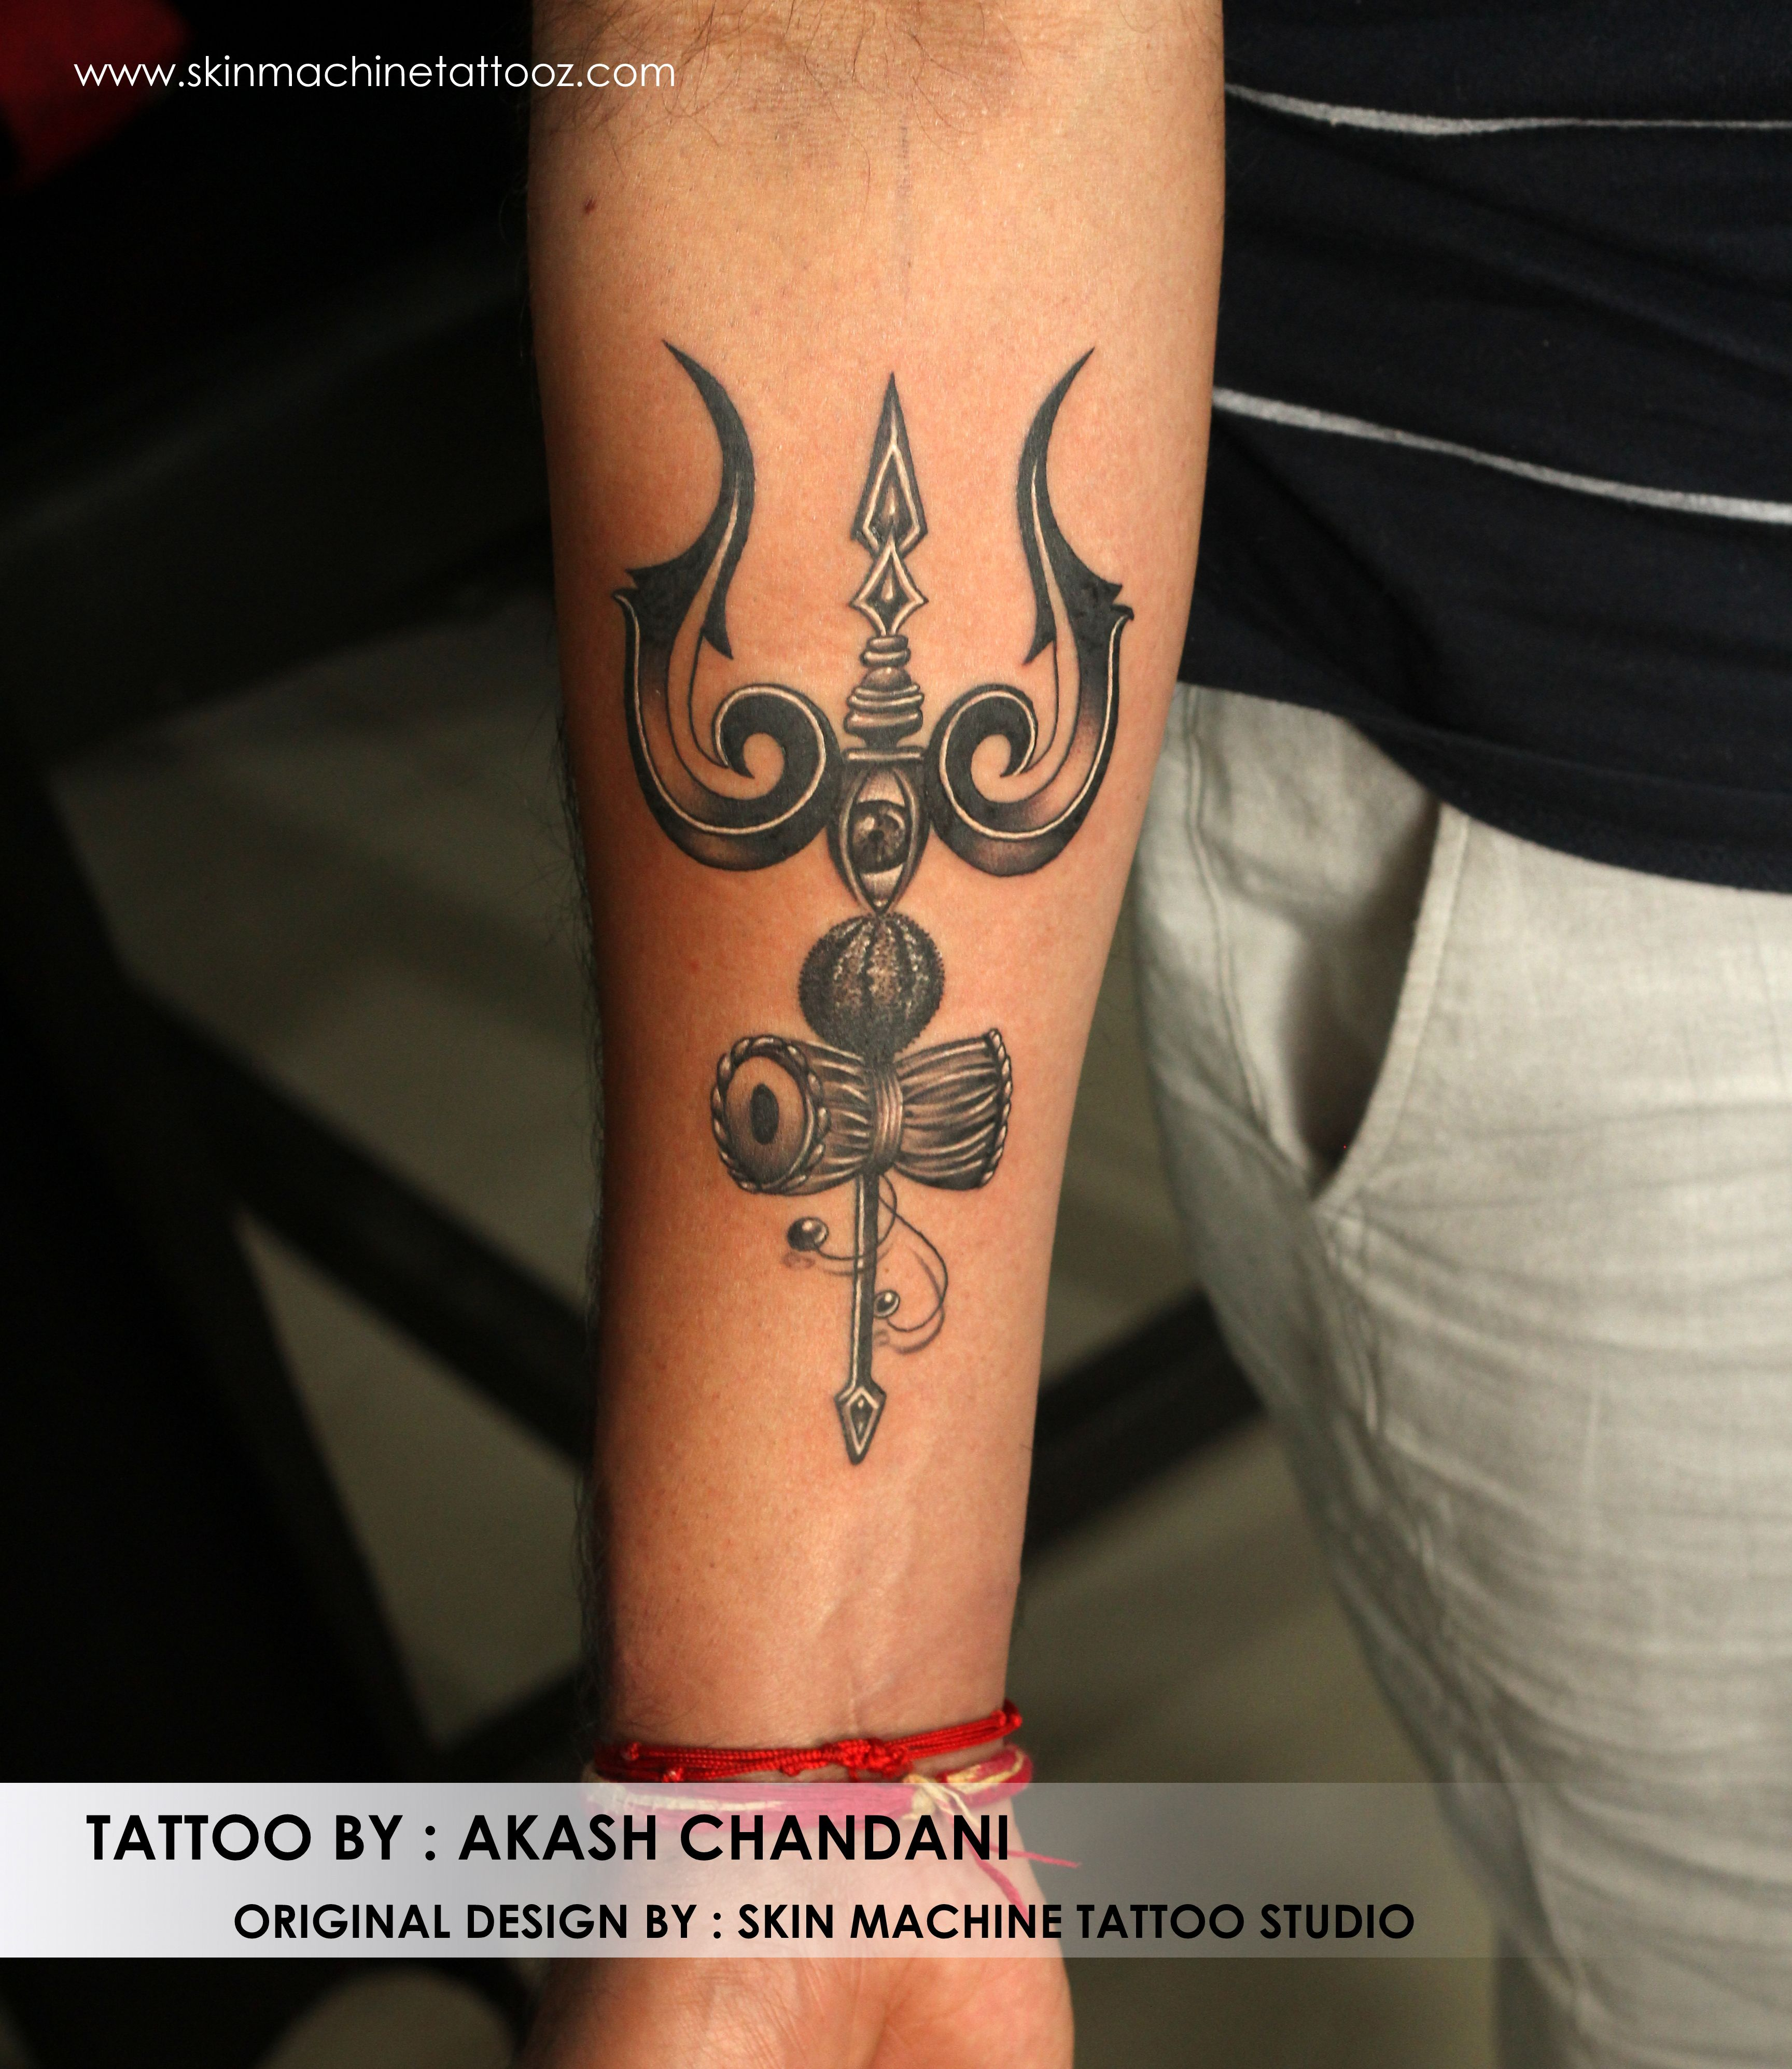 d55b54311 Customized Lord Shiva Elements Tattoo Designed by Naina Jain, Tattoo done  by Akash Chandani Thanks for looking !!